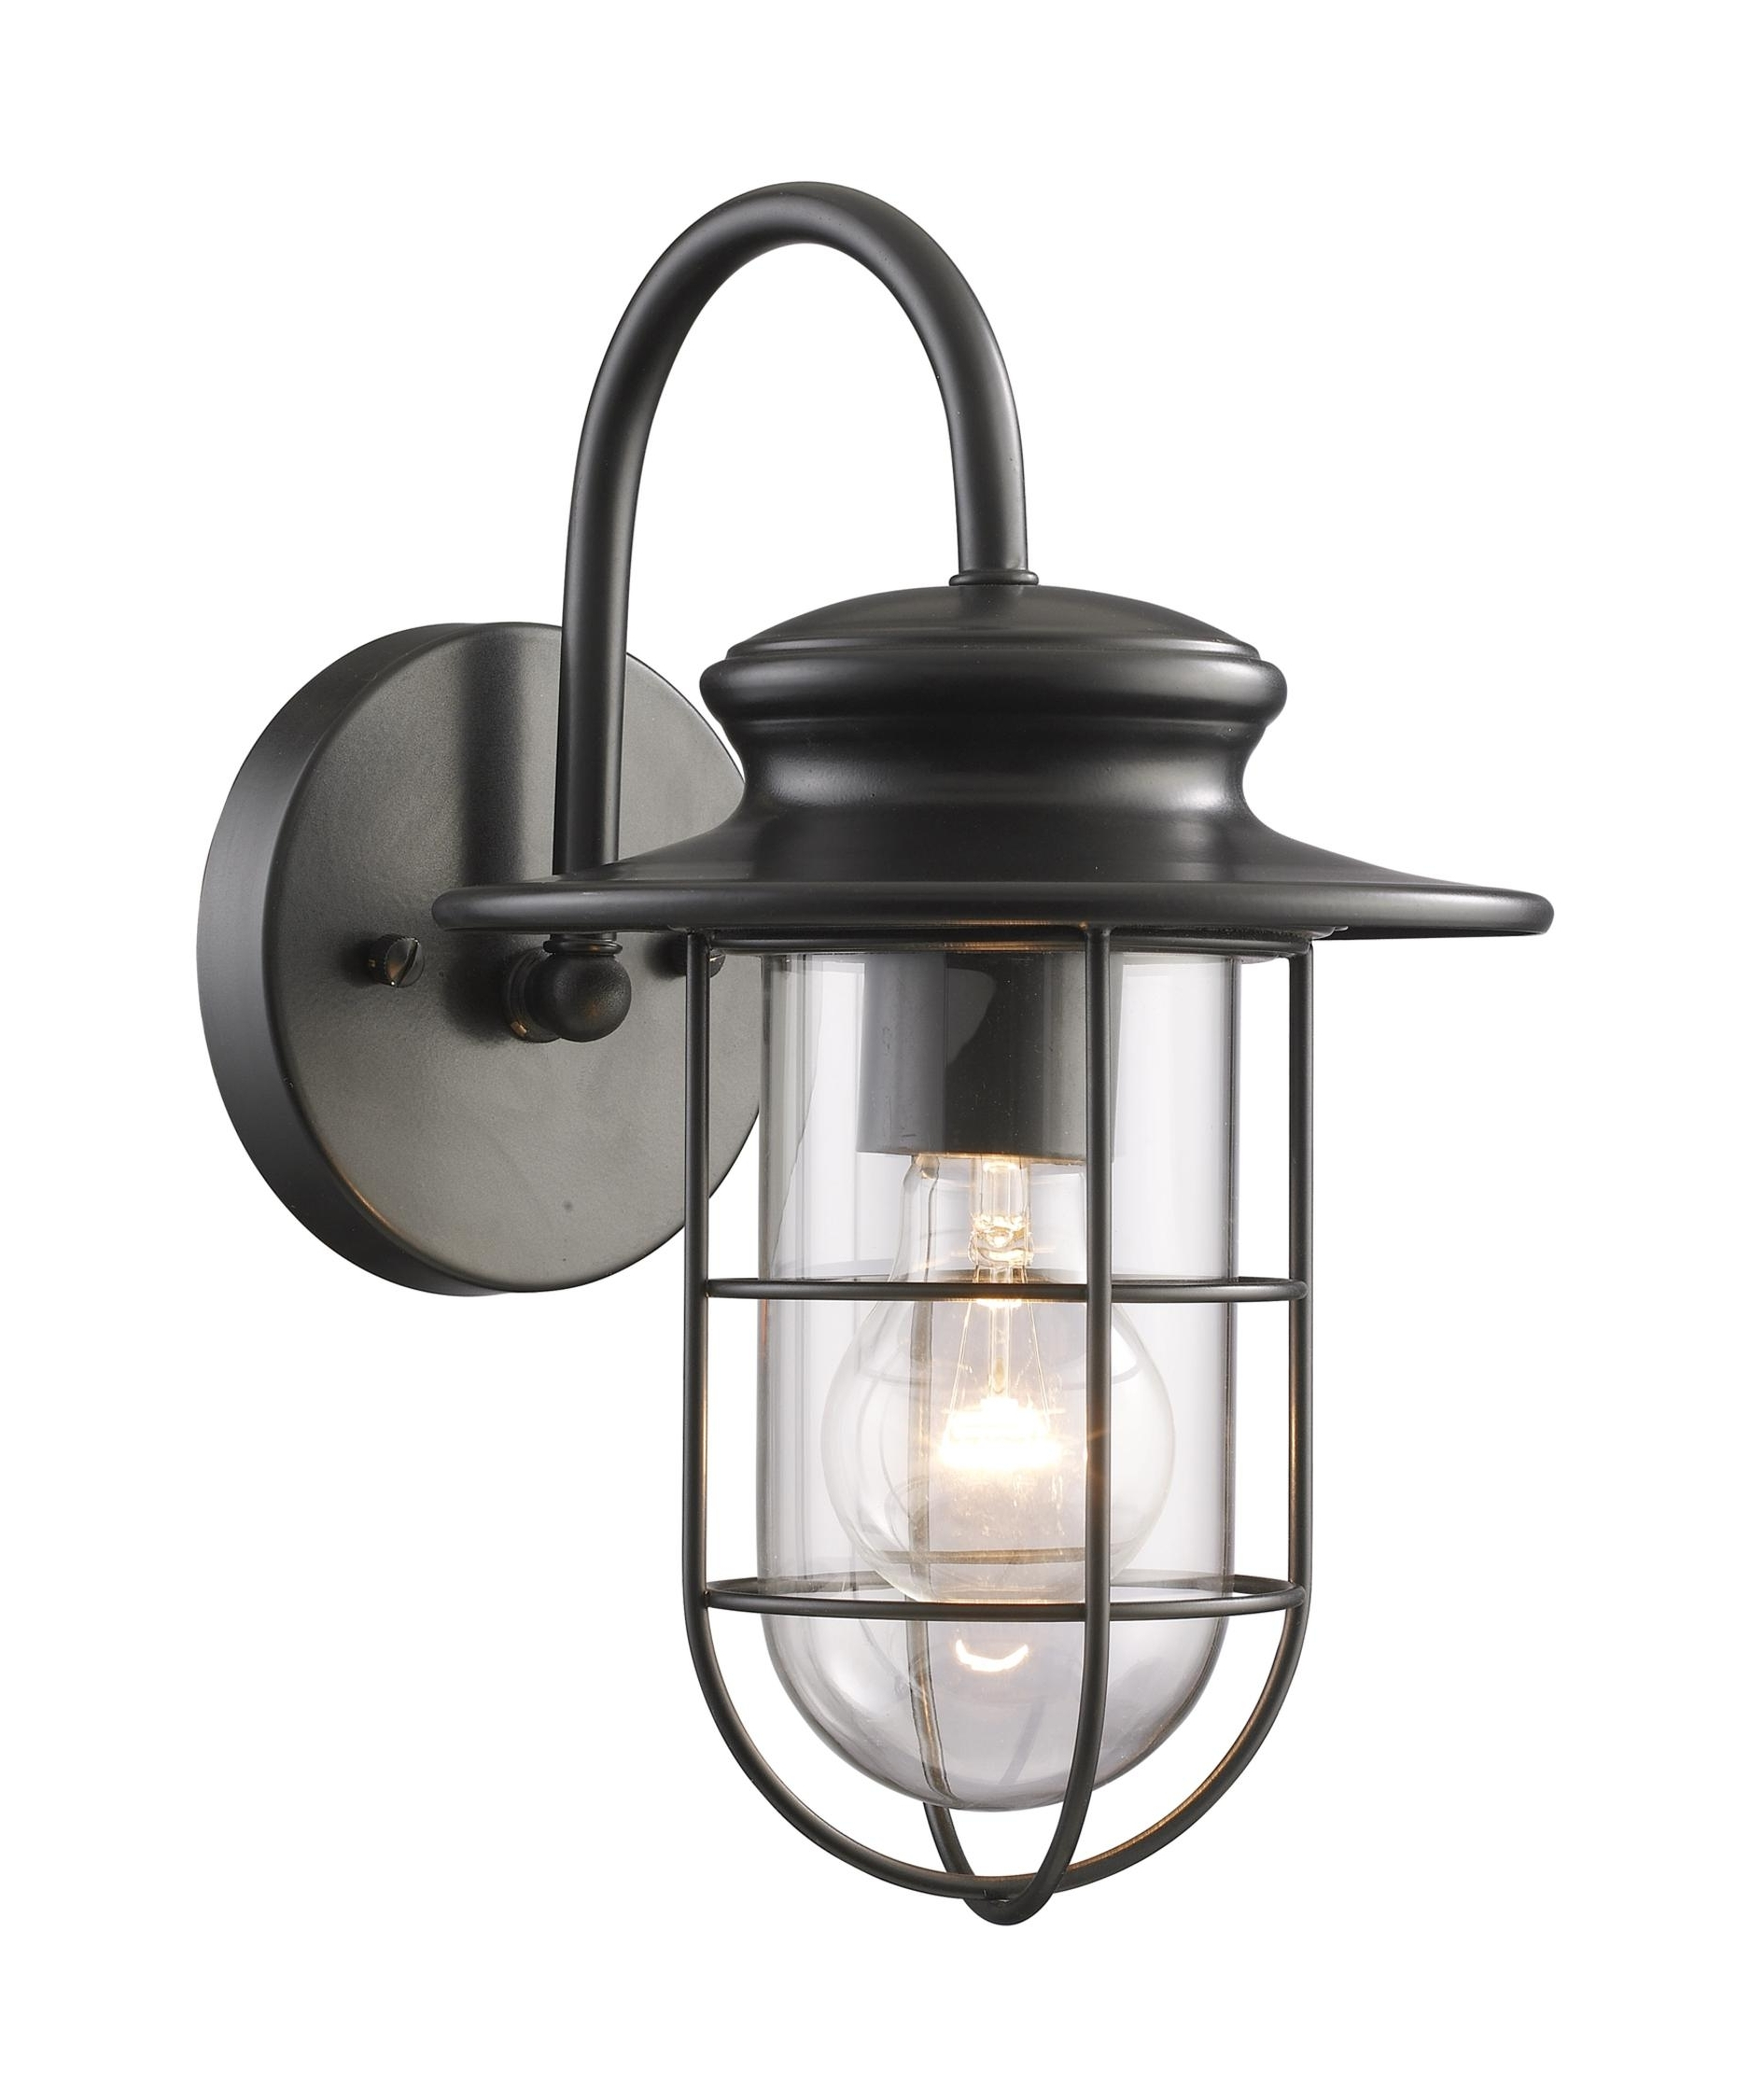 Nautical Outdoor Wall Lighting With Widely Used Elk Lighting 42284 1 Portside 7 Inch Wide 1 Light Outdoor Wall Light (View 10 of 20)